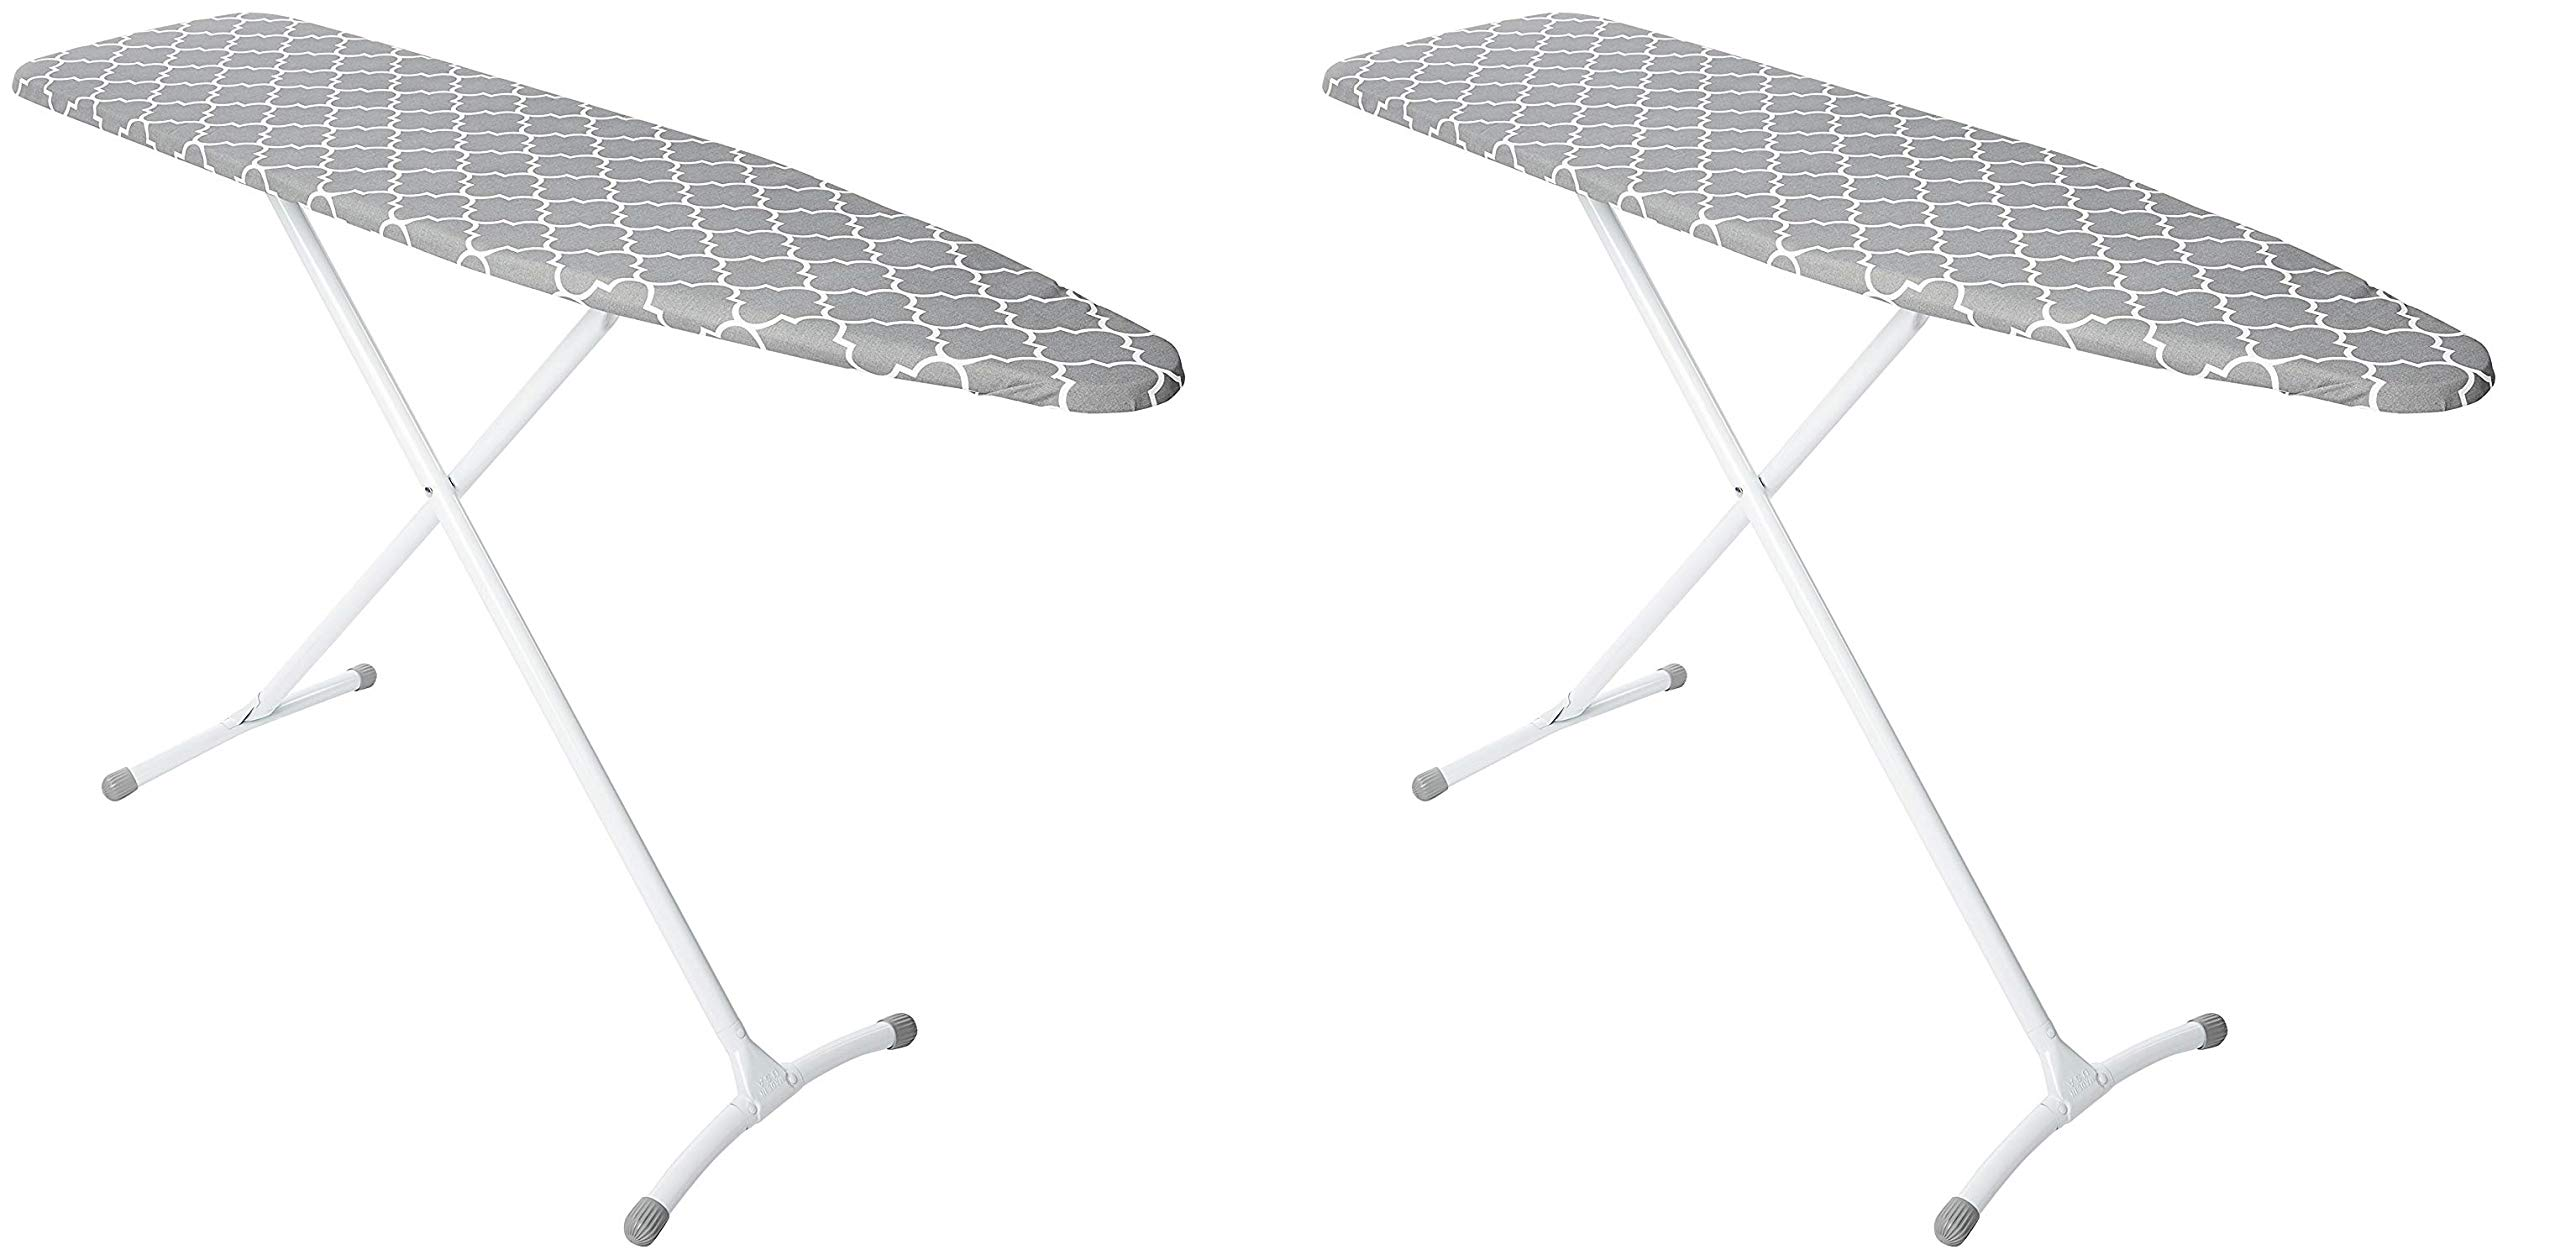 Homz Contour Steel Top Ironing Board, Grey & White Filigree Cover (Pack of 2)